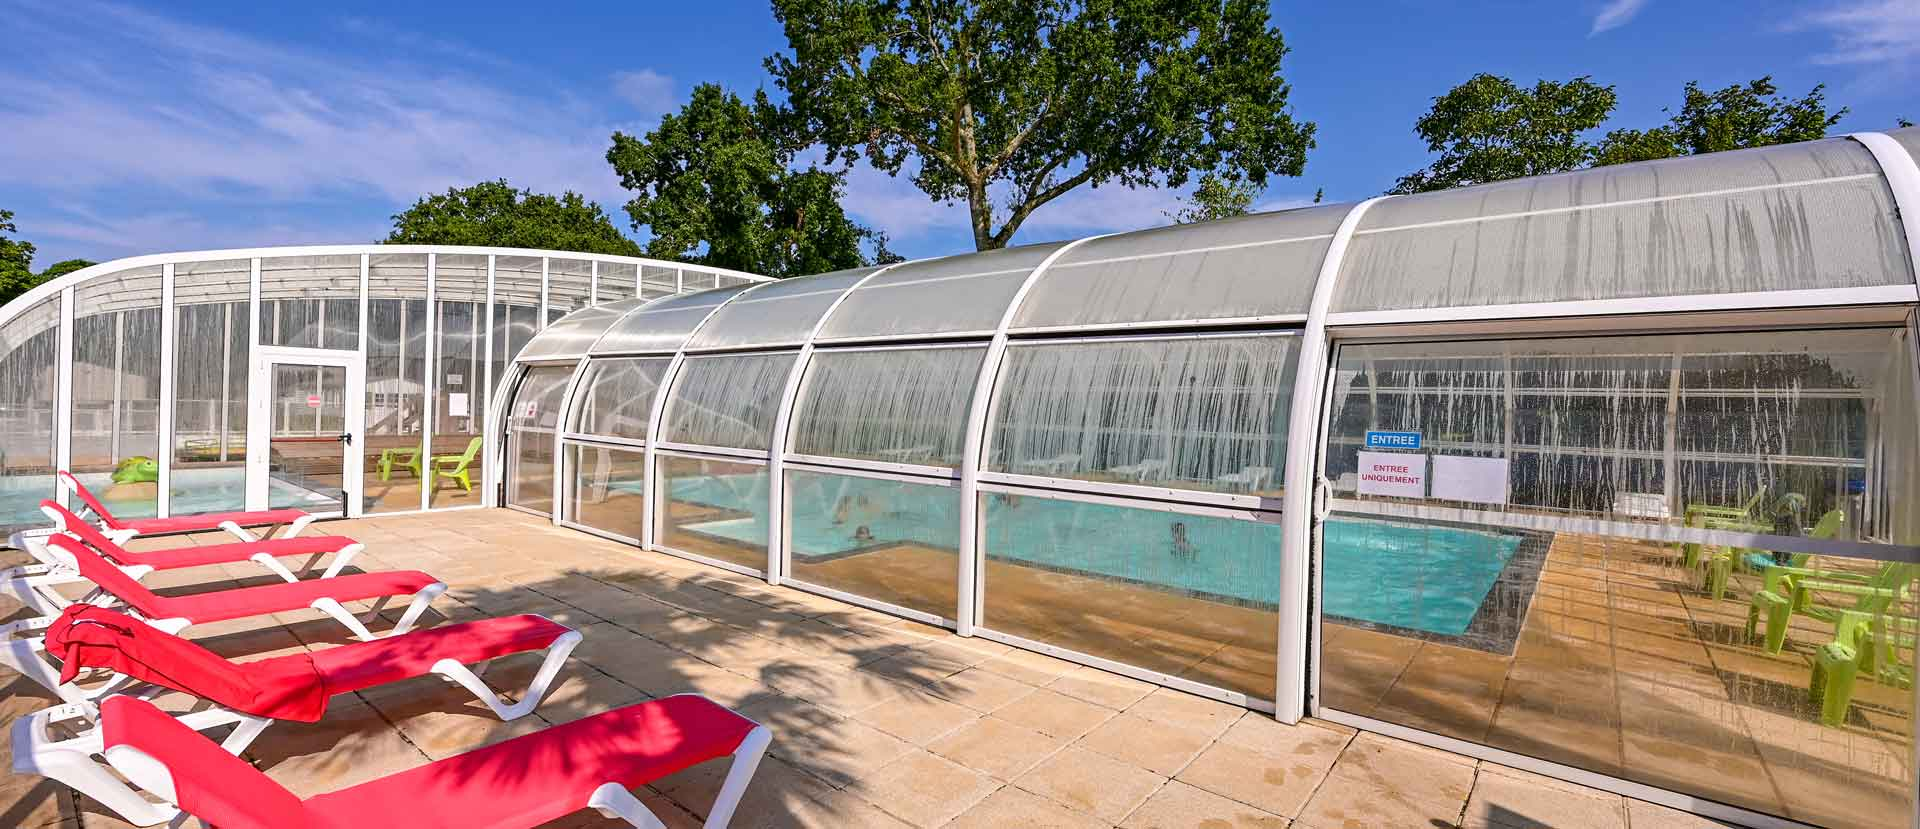 piscine couvert camping proche damgan